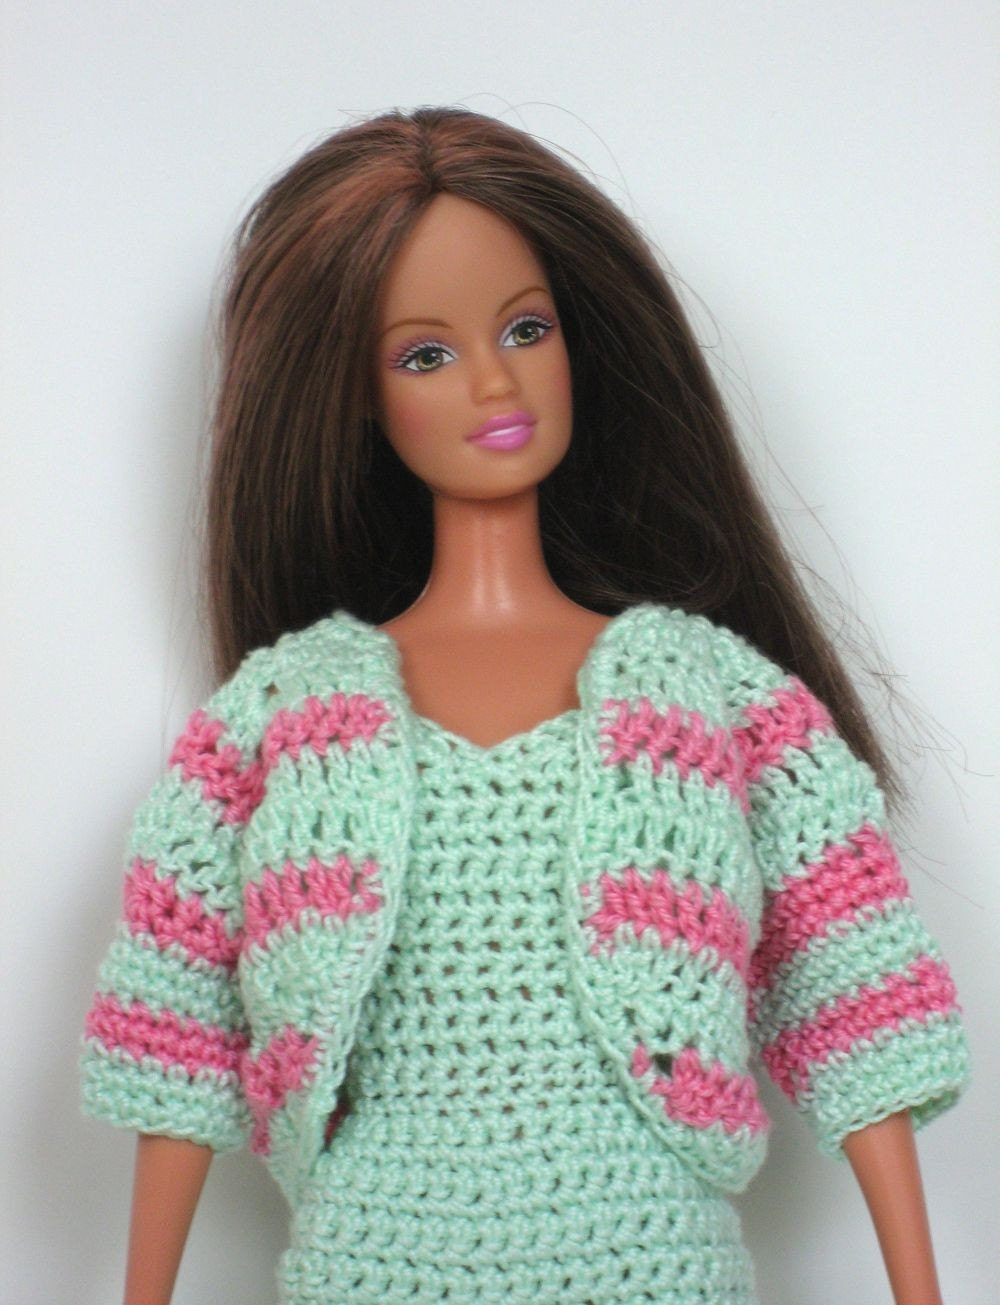 Free Knitting Patterns For Barbie And Ken Dolls : BARBIE CROCHET DOLL FASHION FREE - Crochet   Learn How to ...